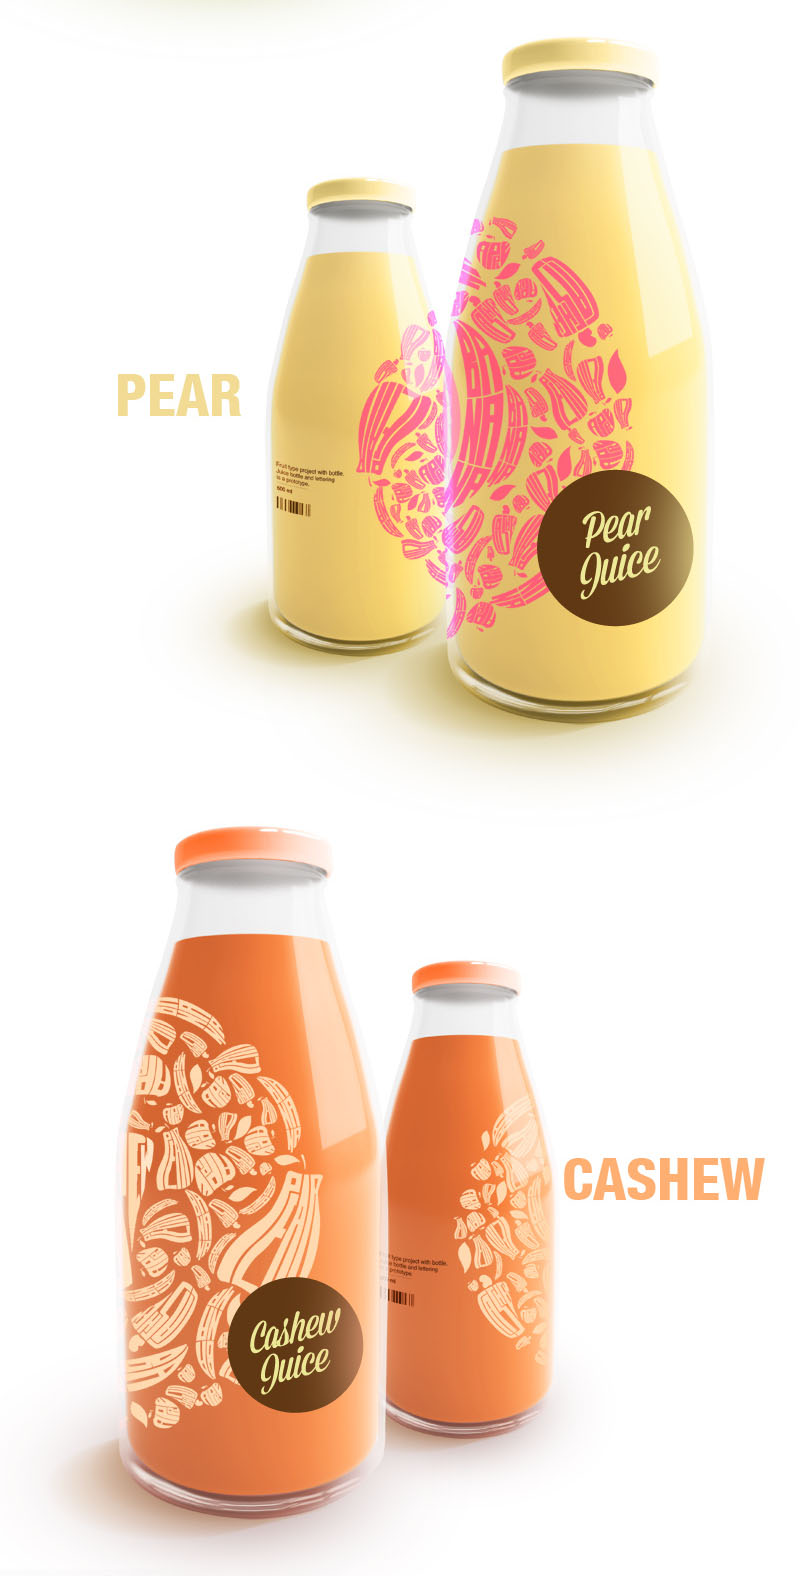 Posm design sofy posm design - Design Inspired Lettering In Fun Packaging Concepts With Strong Tones Maintains Unity In All The Flavors And Adds The Point Of Sale